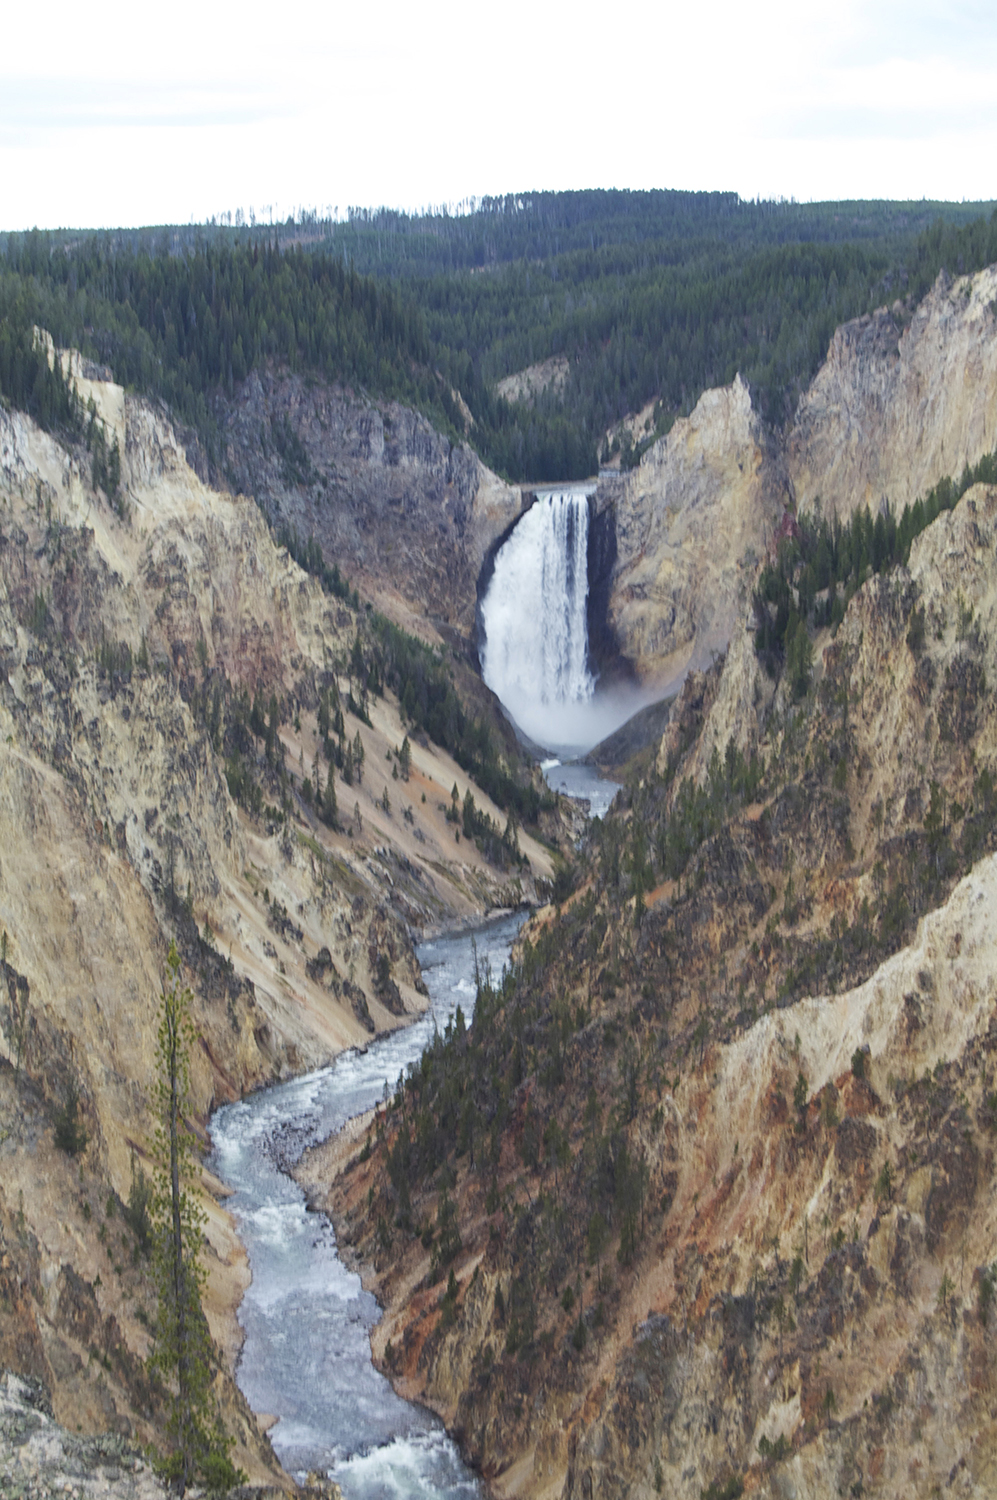 Grand Canyon of the Yellowstone from Artist's Point overlooking the falls.